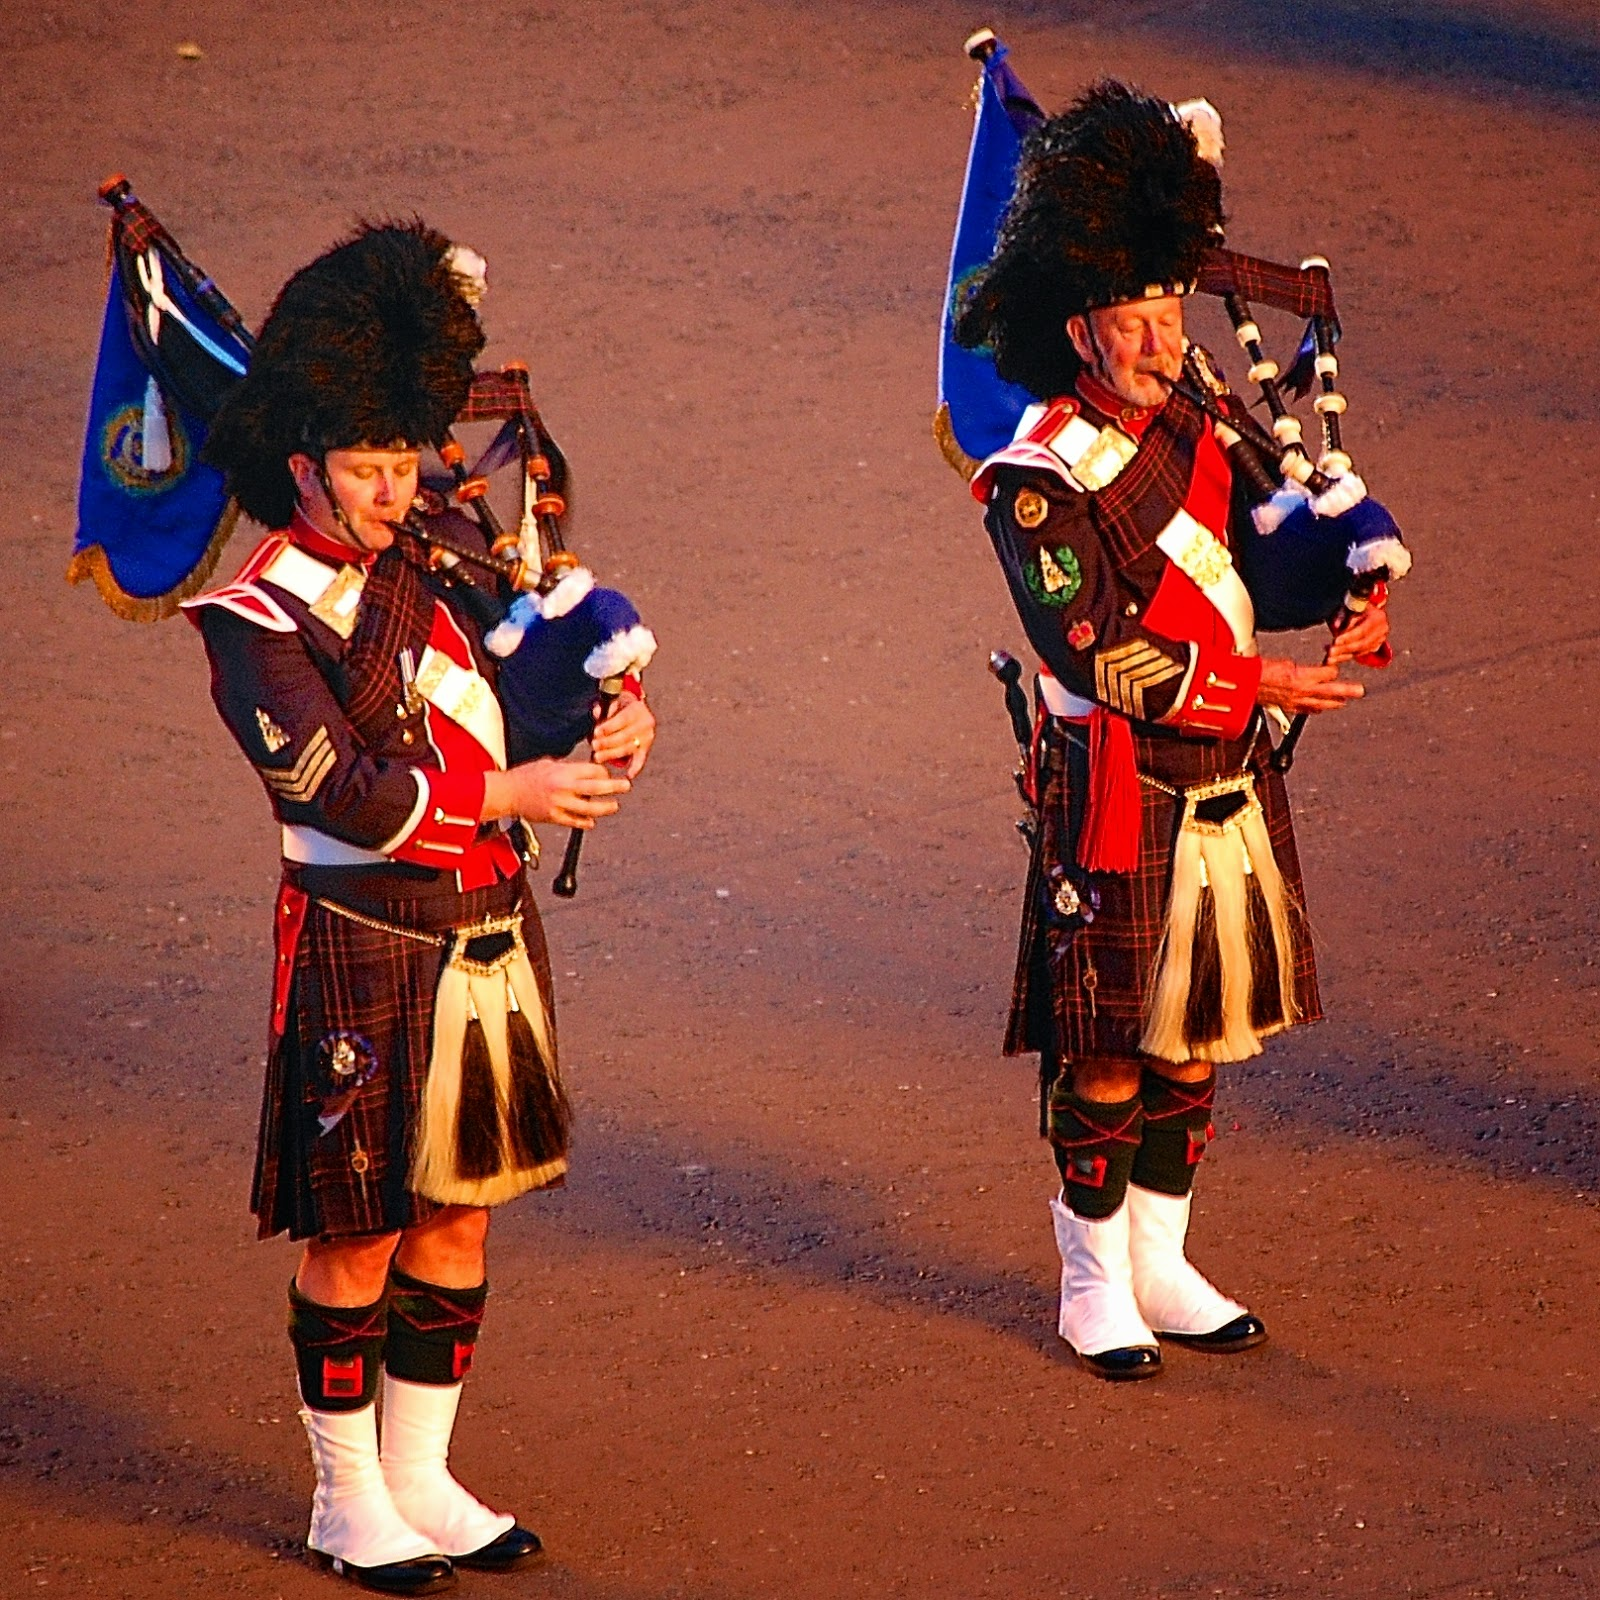 Two bagpipers